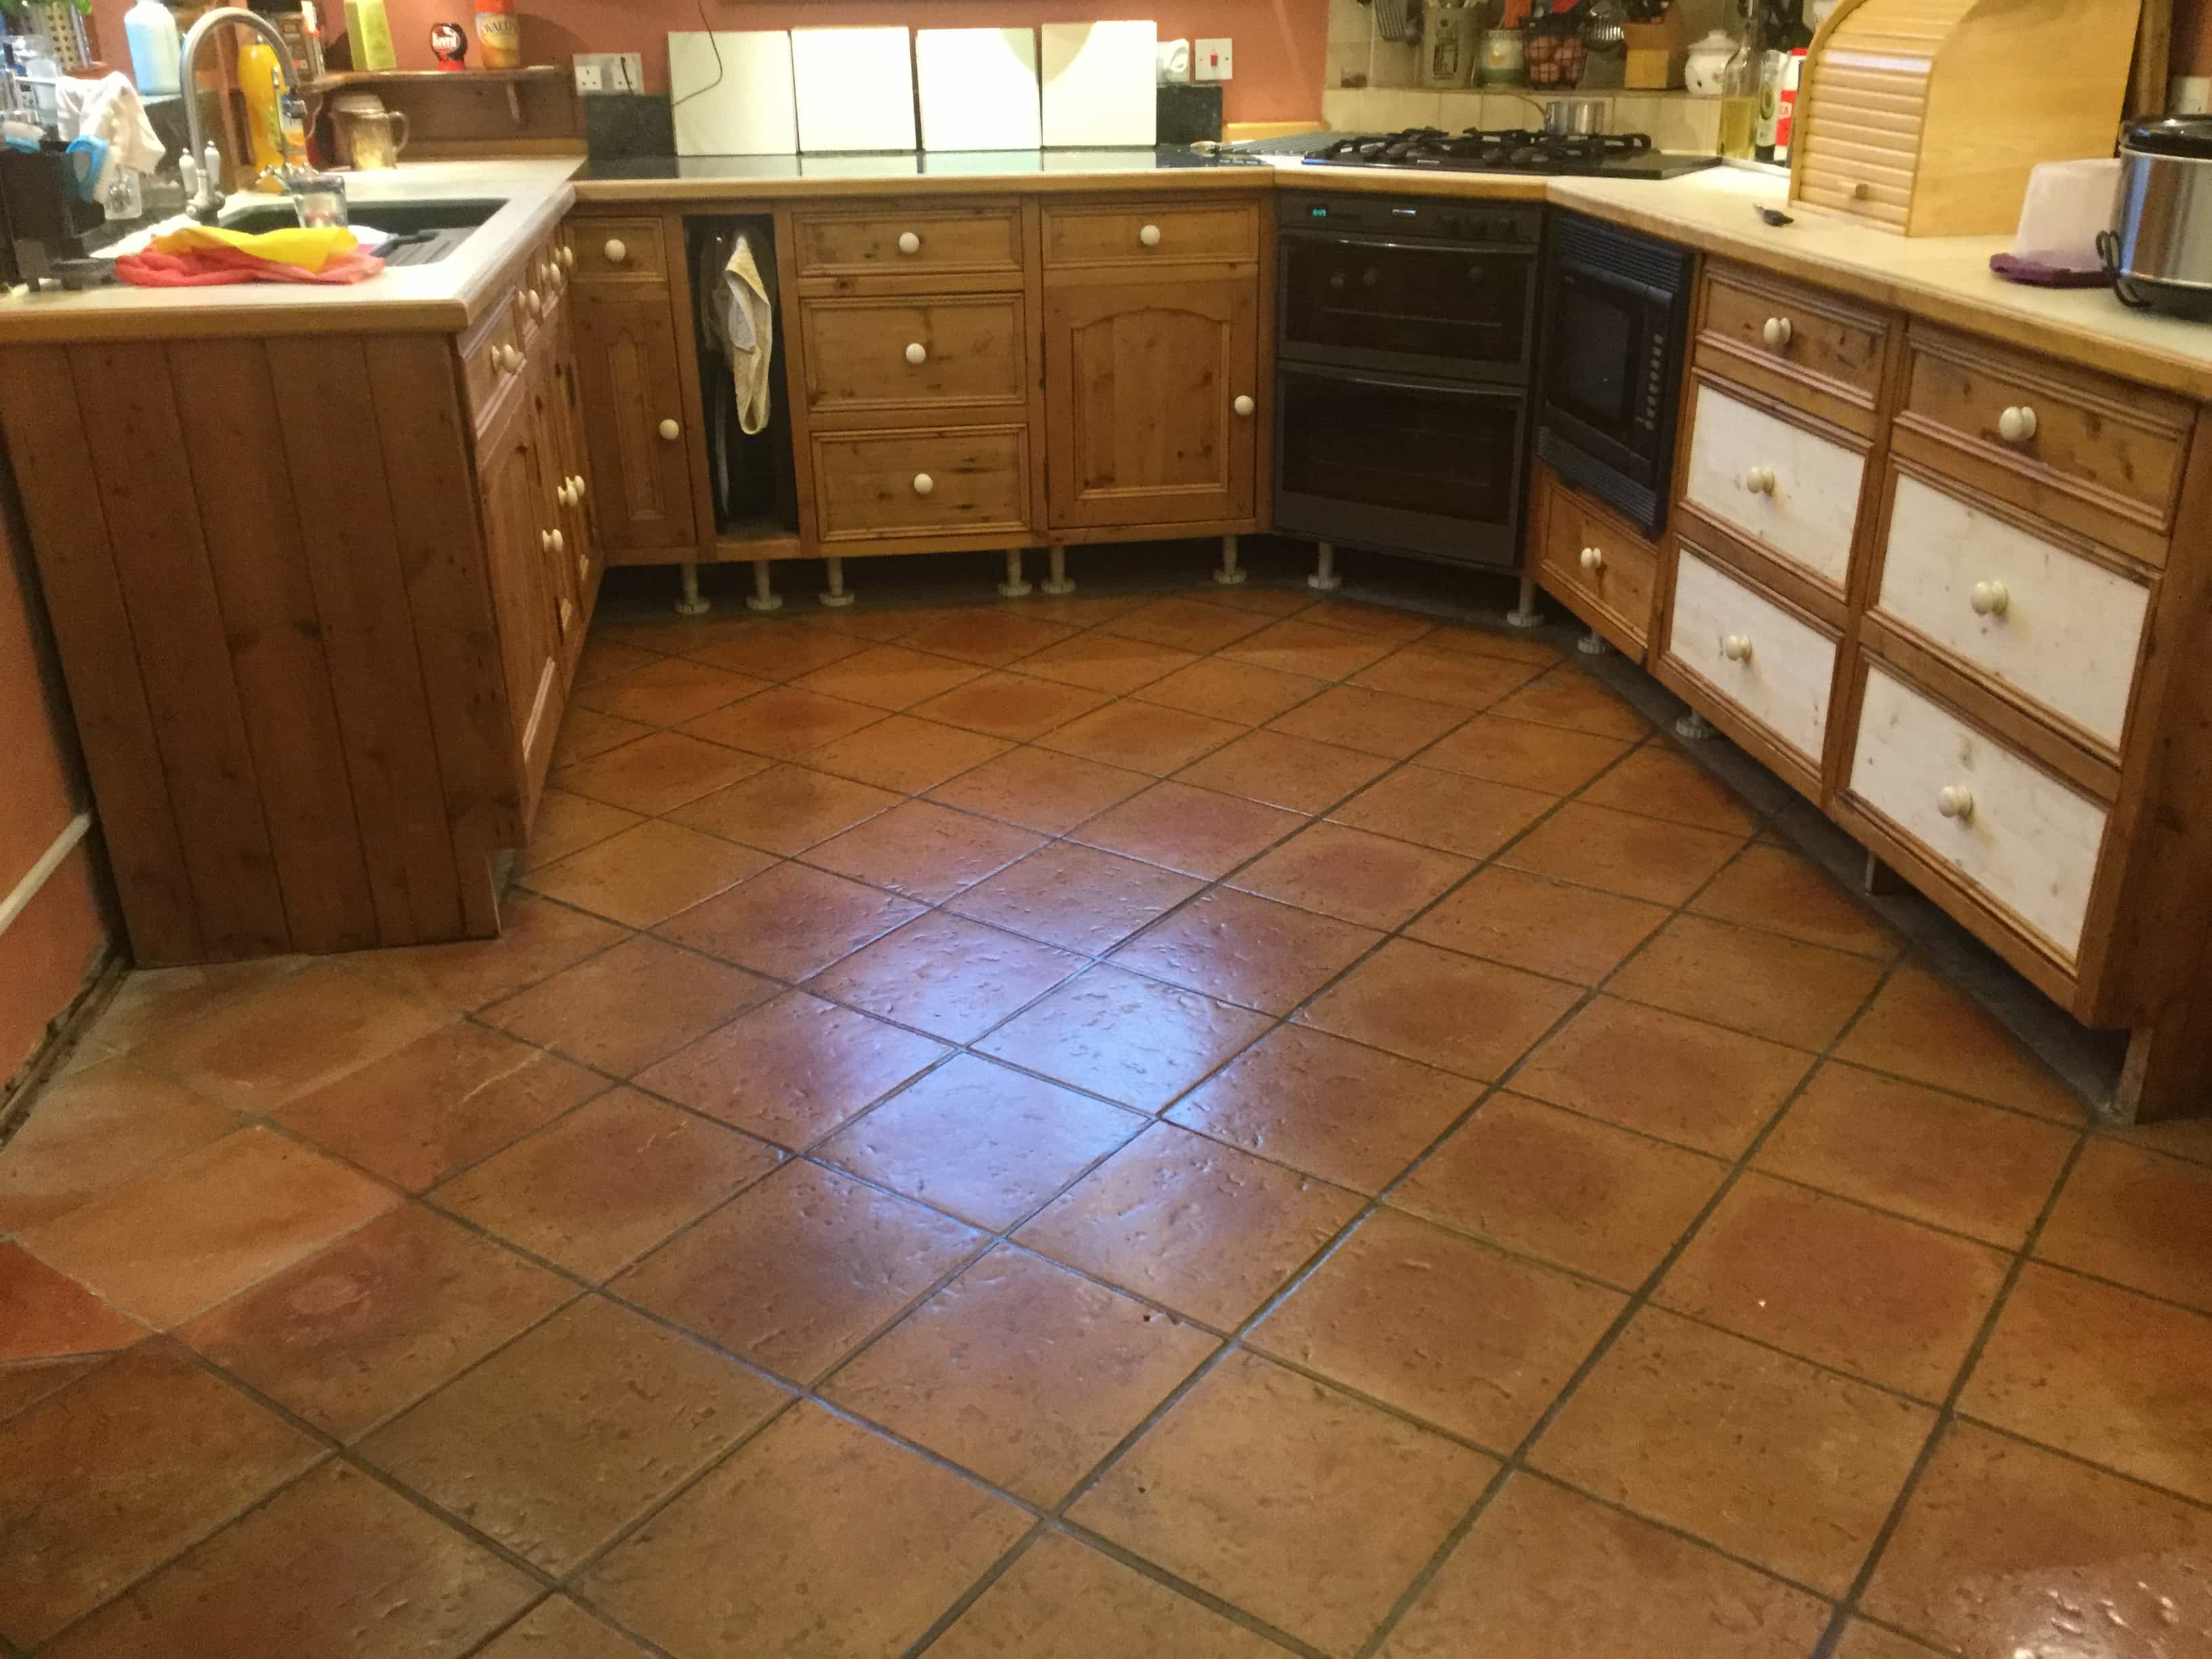 Terracotta Tiled Kitchen Floor Before Cleaning Maidford